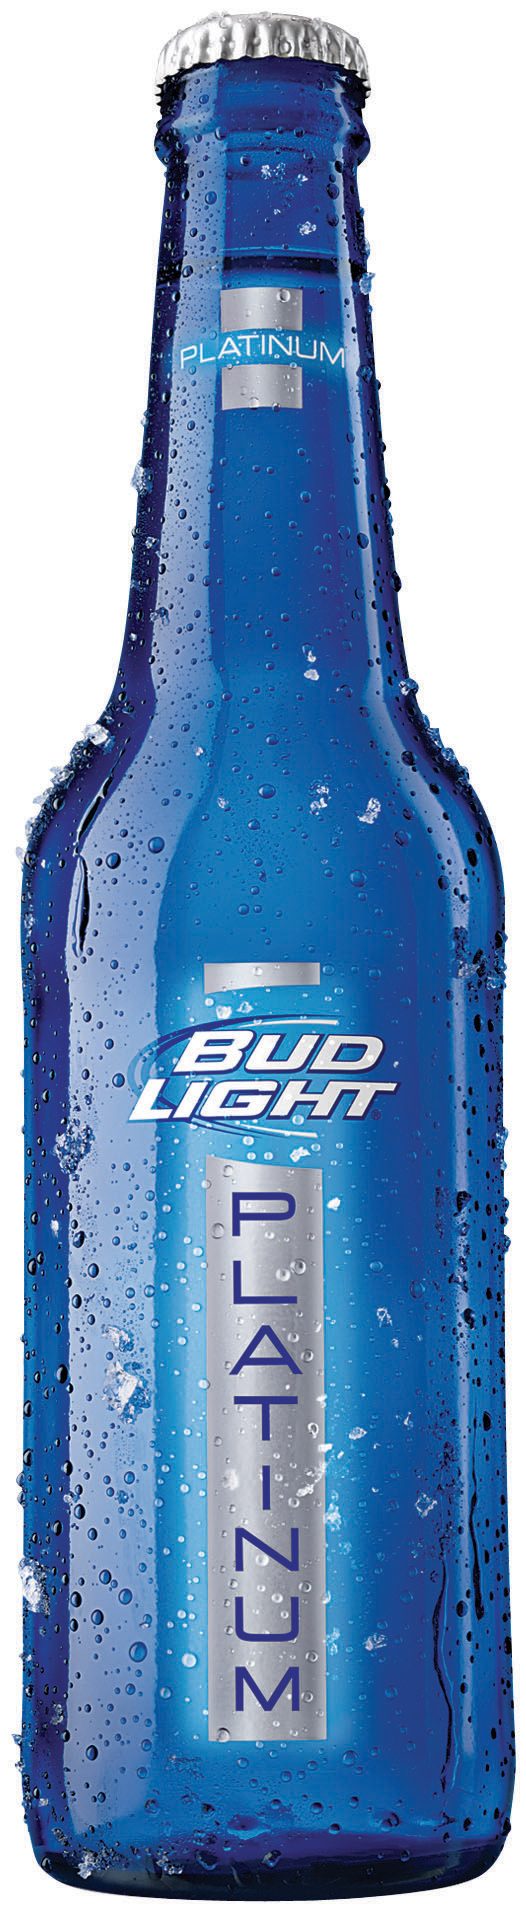 bud light platinum and yapici gif izgi lime